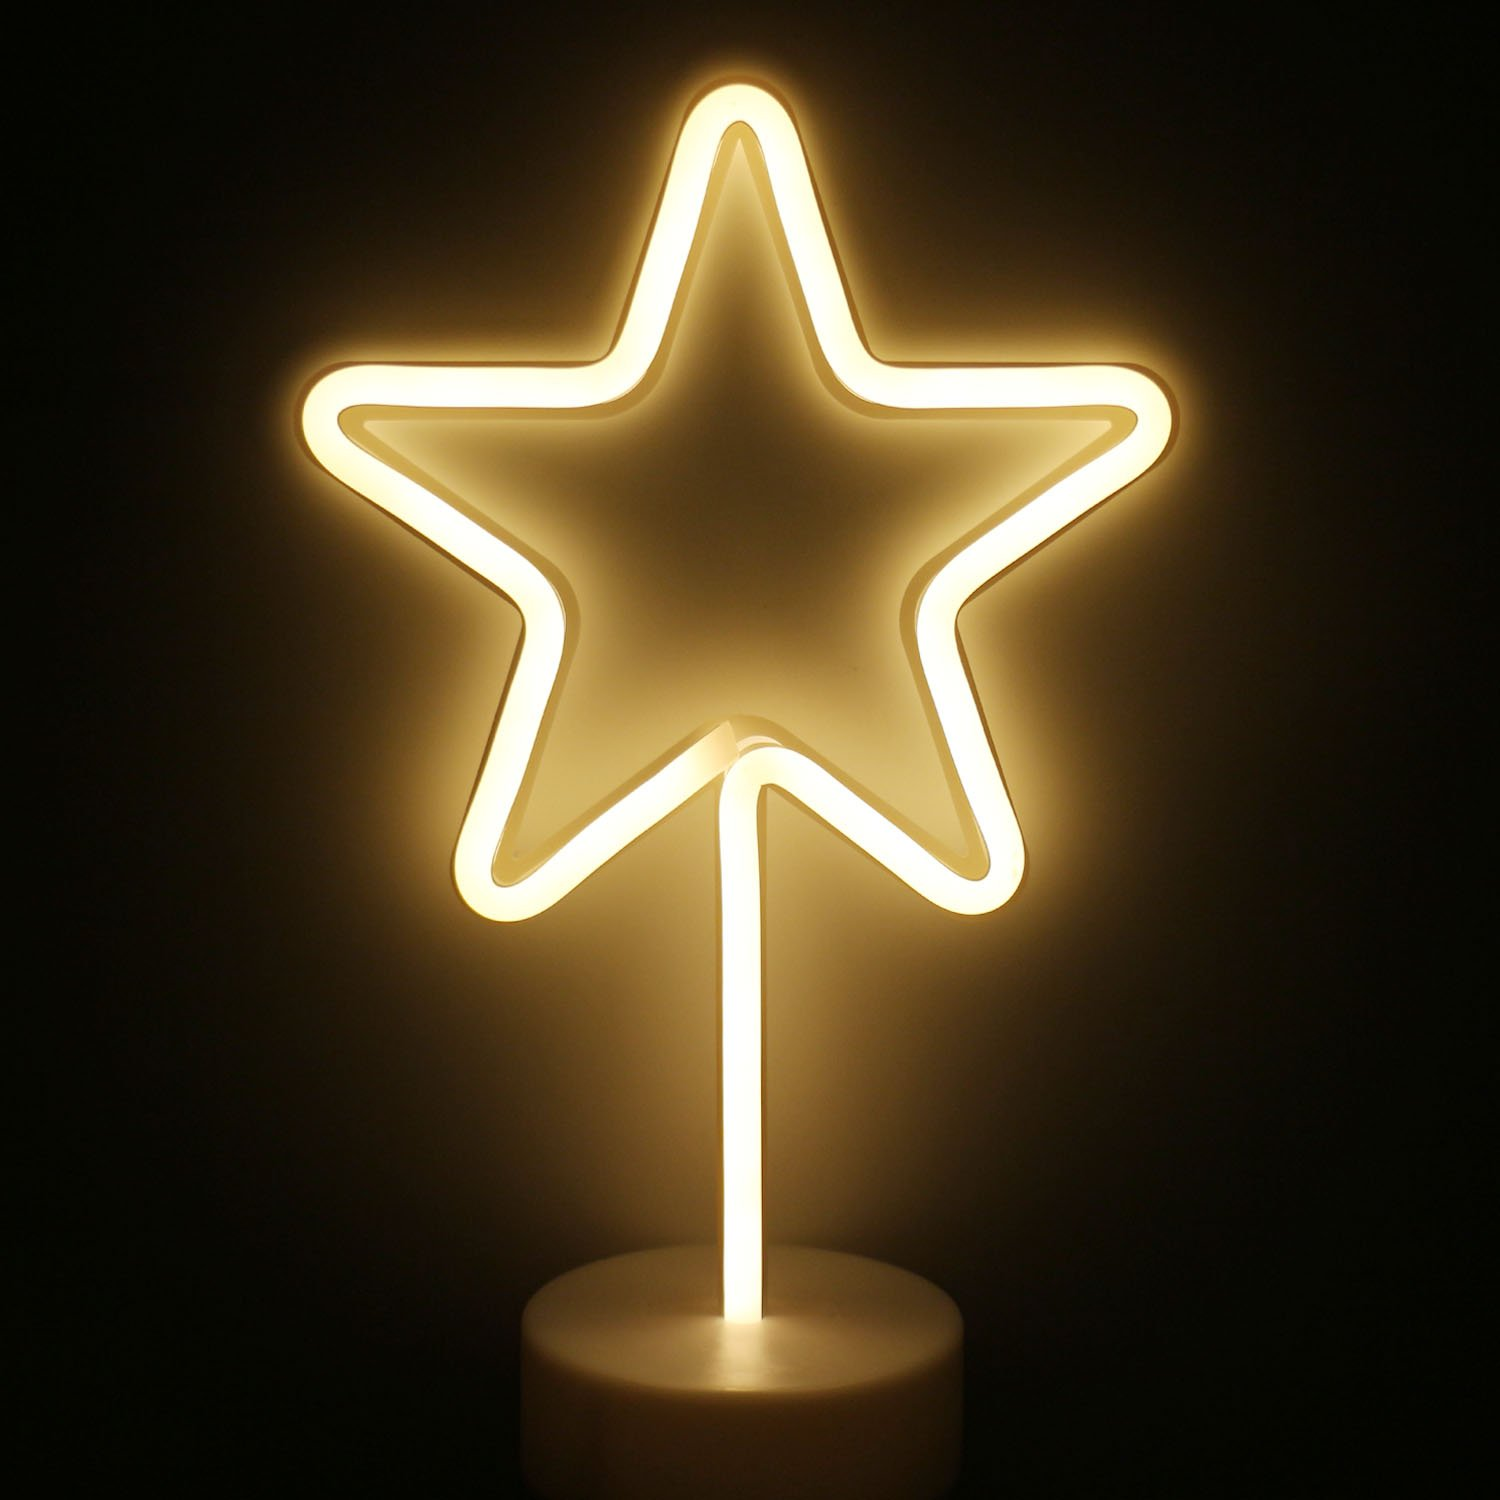 LED Star Neon Light Signs - XIYUNTE Room Decor Neon Lights Sign with ...